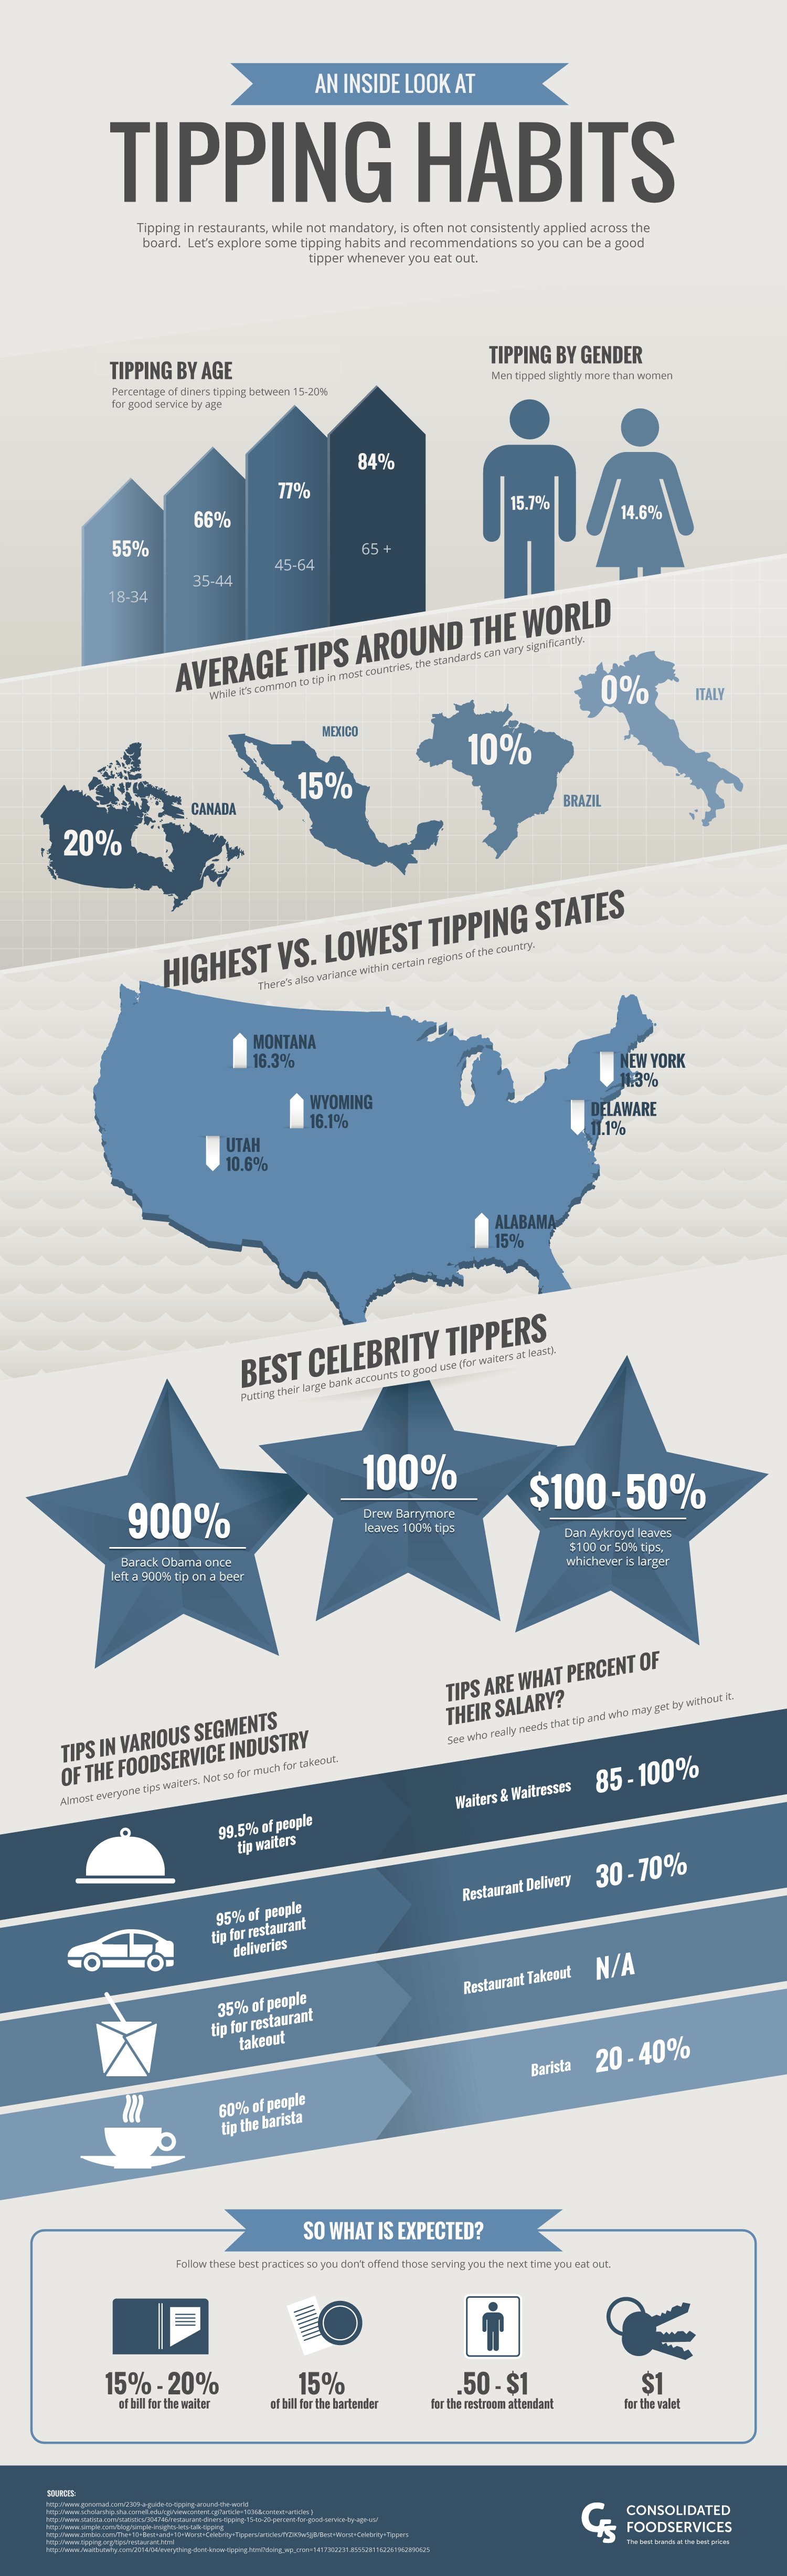 An Inside Look at Tipping Habits Infographic